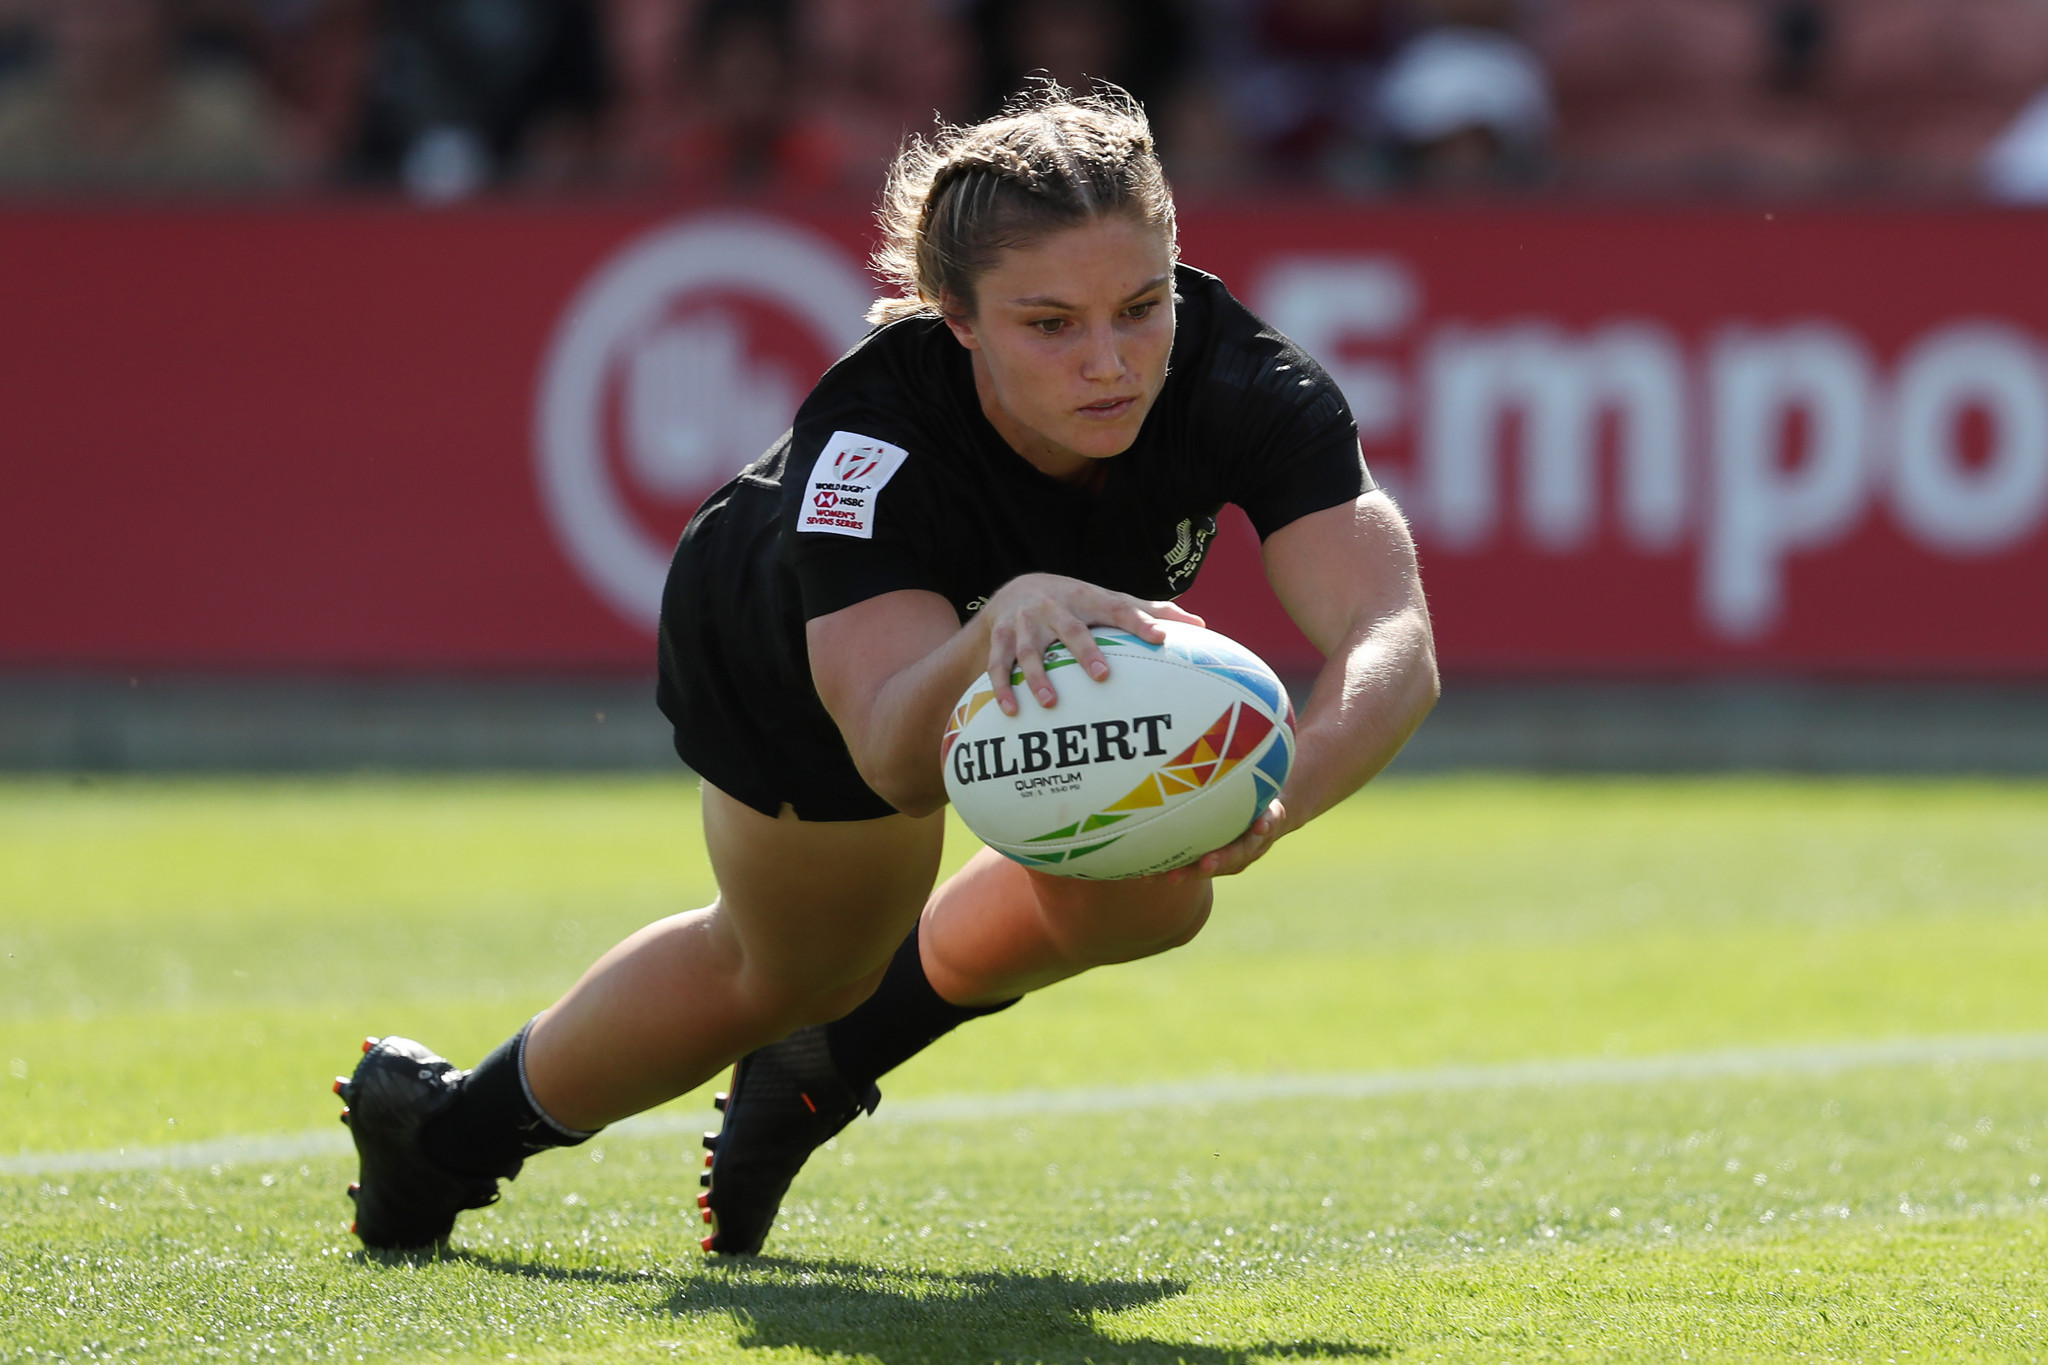 New Zealand begin home World Rugby Women's Sevens Series with two victories